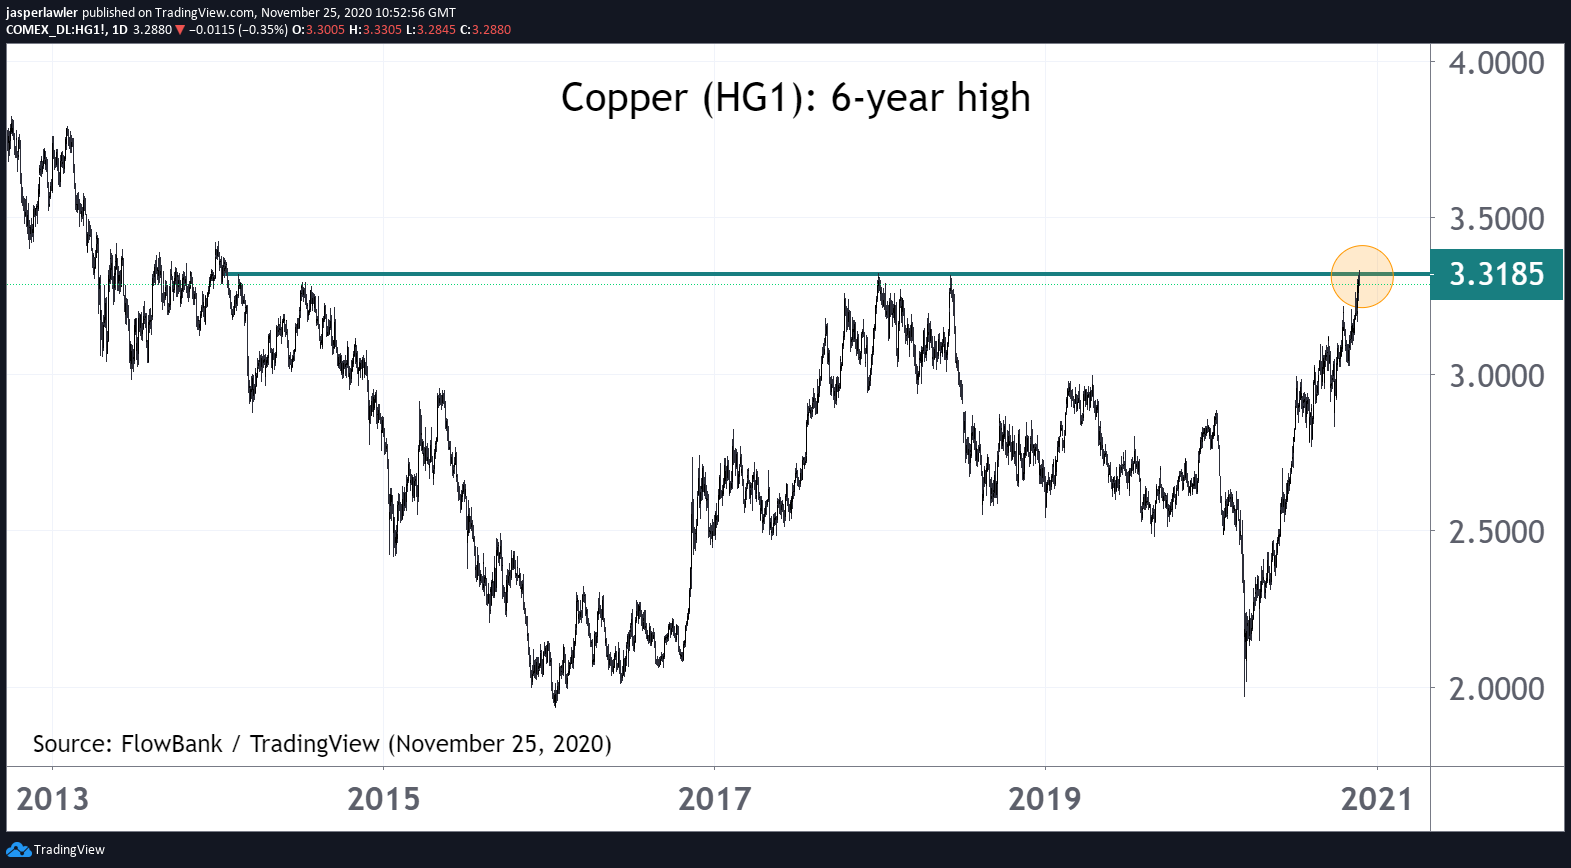 Copper just hit a 6-year high! #HG